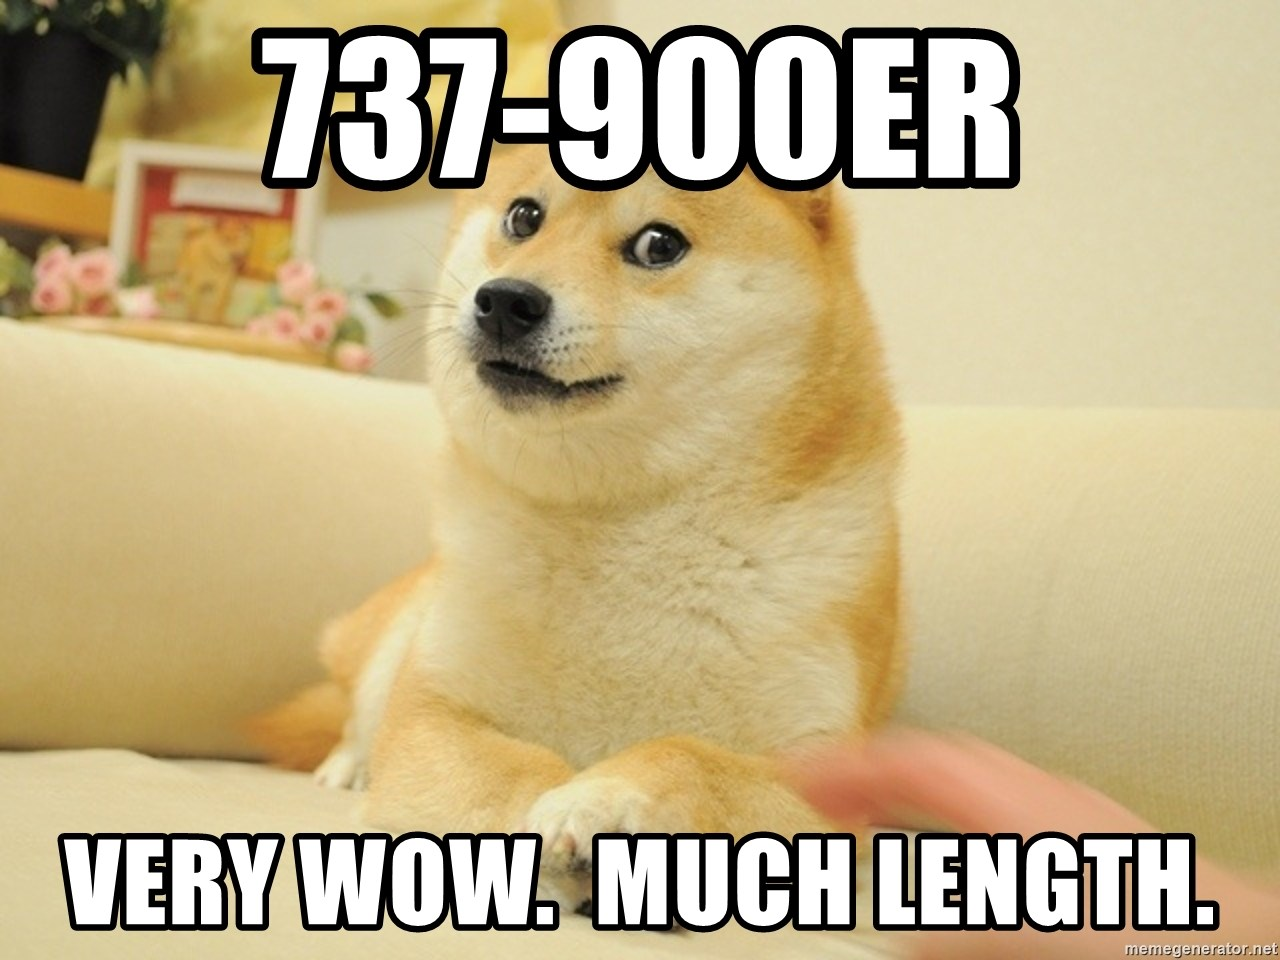 so doge - 737-900ER very wow.  much length.